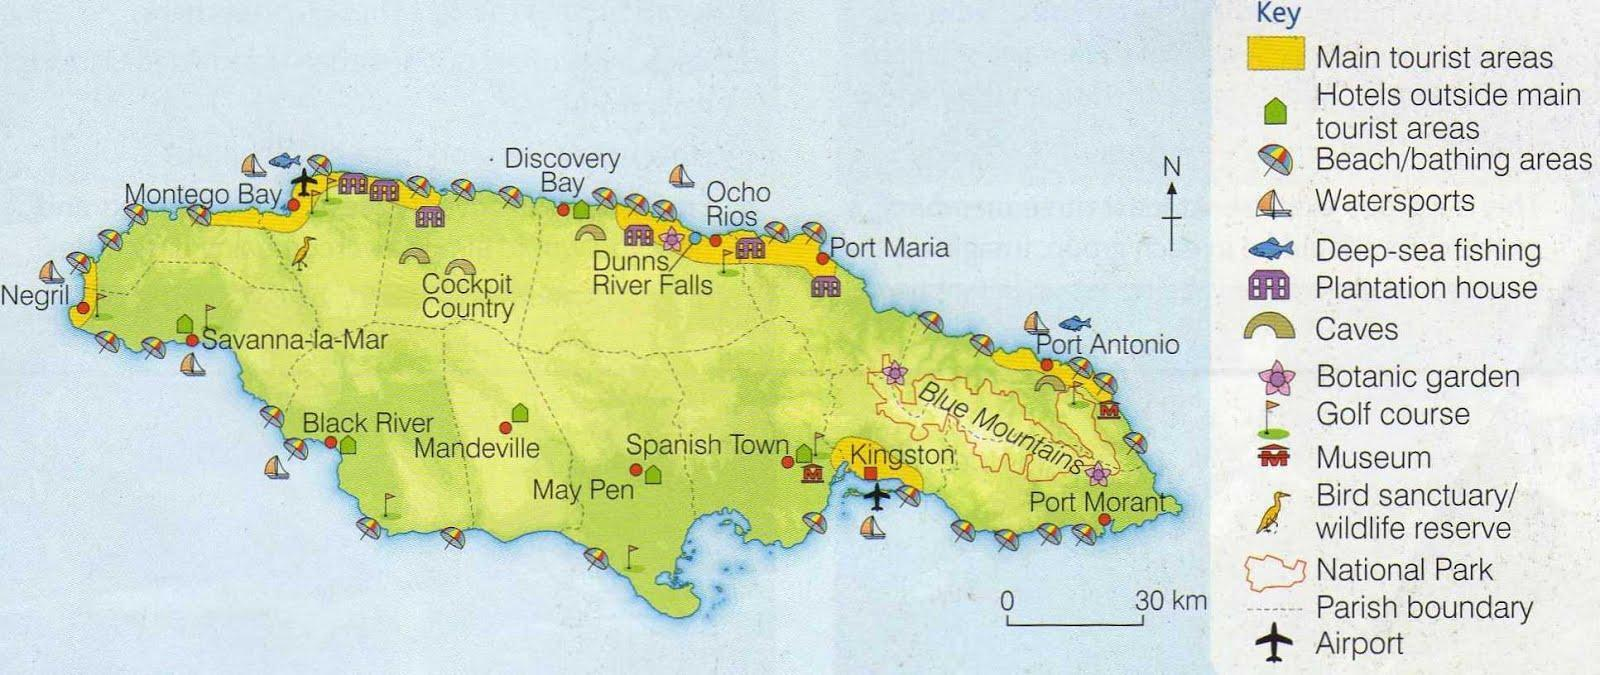 Mass tourism and Tourism in Jamaica case study GCSE Geography – Tourist Attractions Map In Jamaica